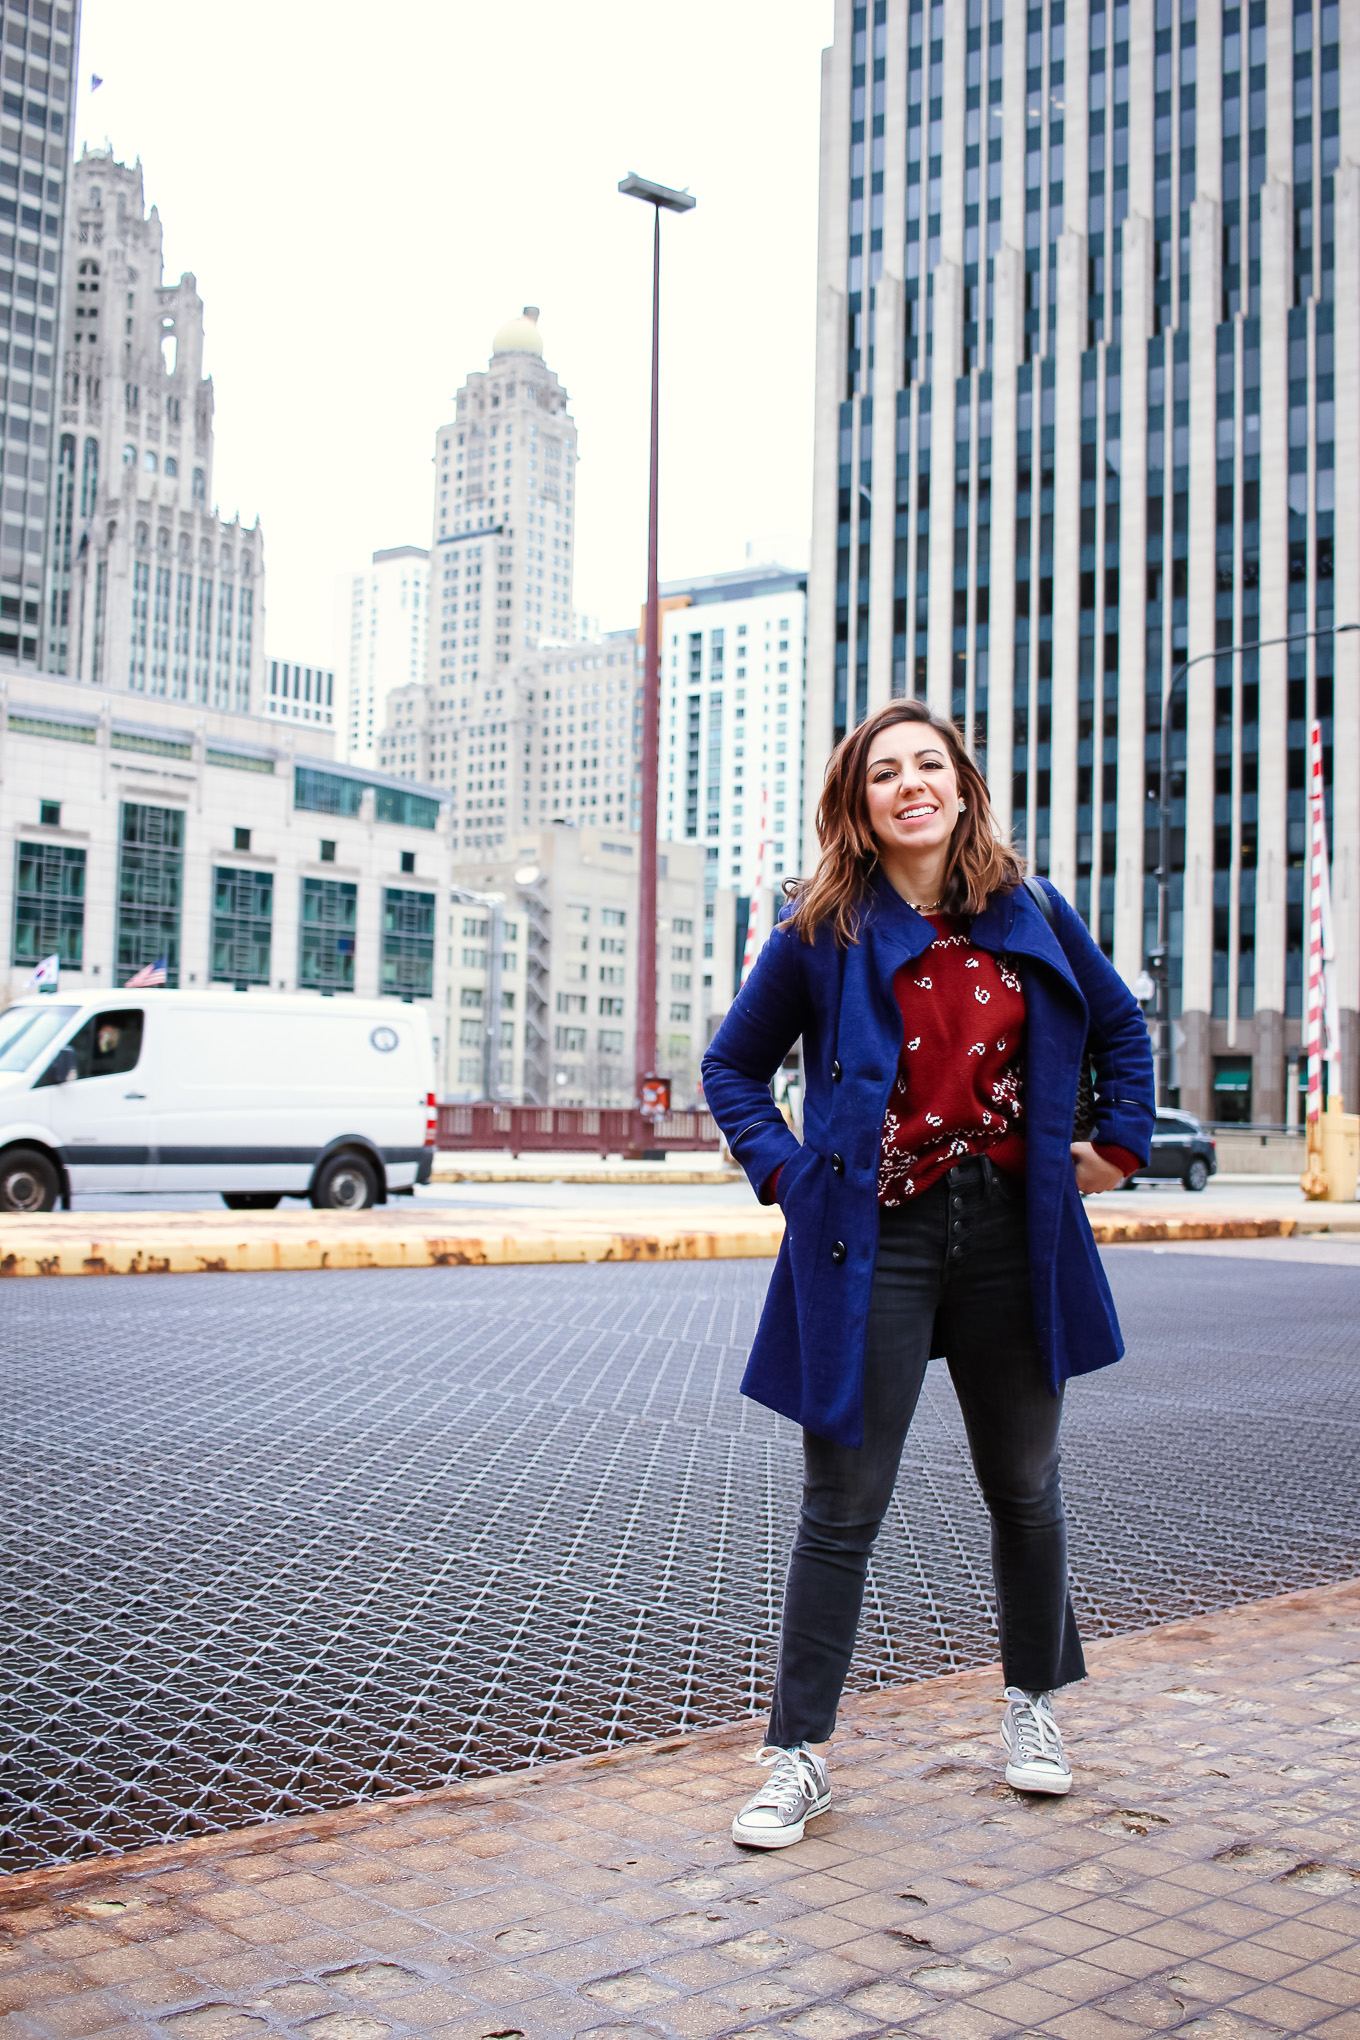 Lifestyle blogger Roxanne of Glass of Glam wearing a Madewell cropped denim, Madewell sweater, converse, a Goyard handbag, and a blue peacoat - Ain't No Party Like A Cropped Denim Party by popular Chicago fashion blogger Glass of Glam